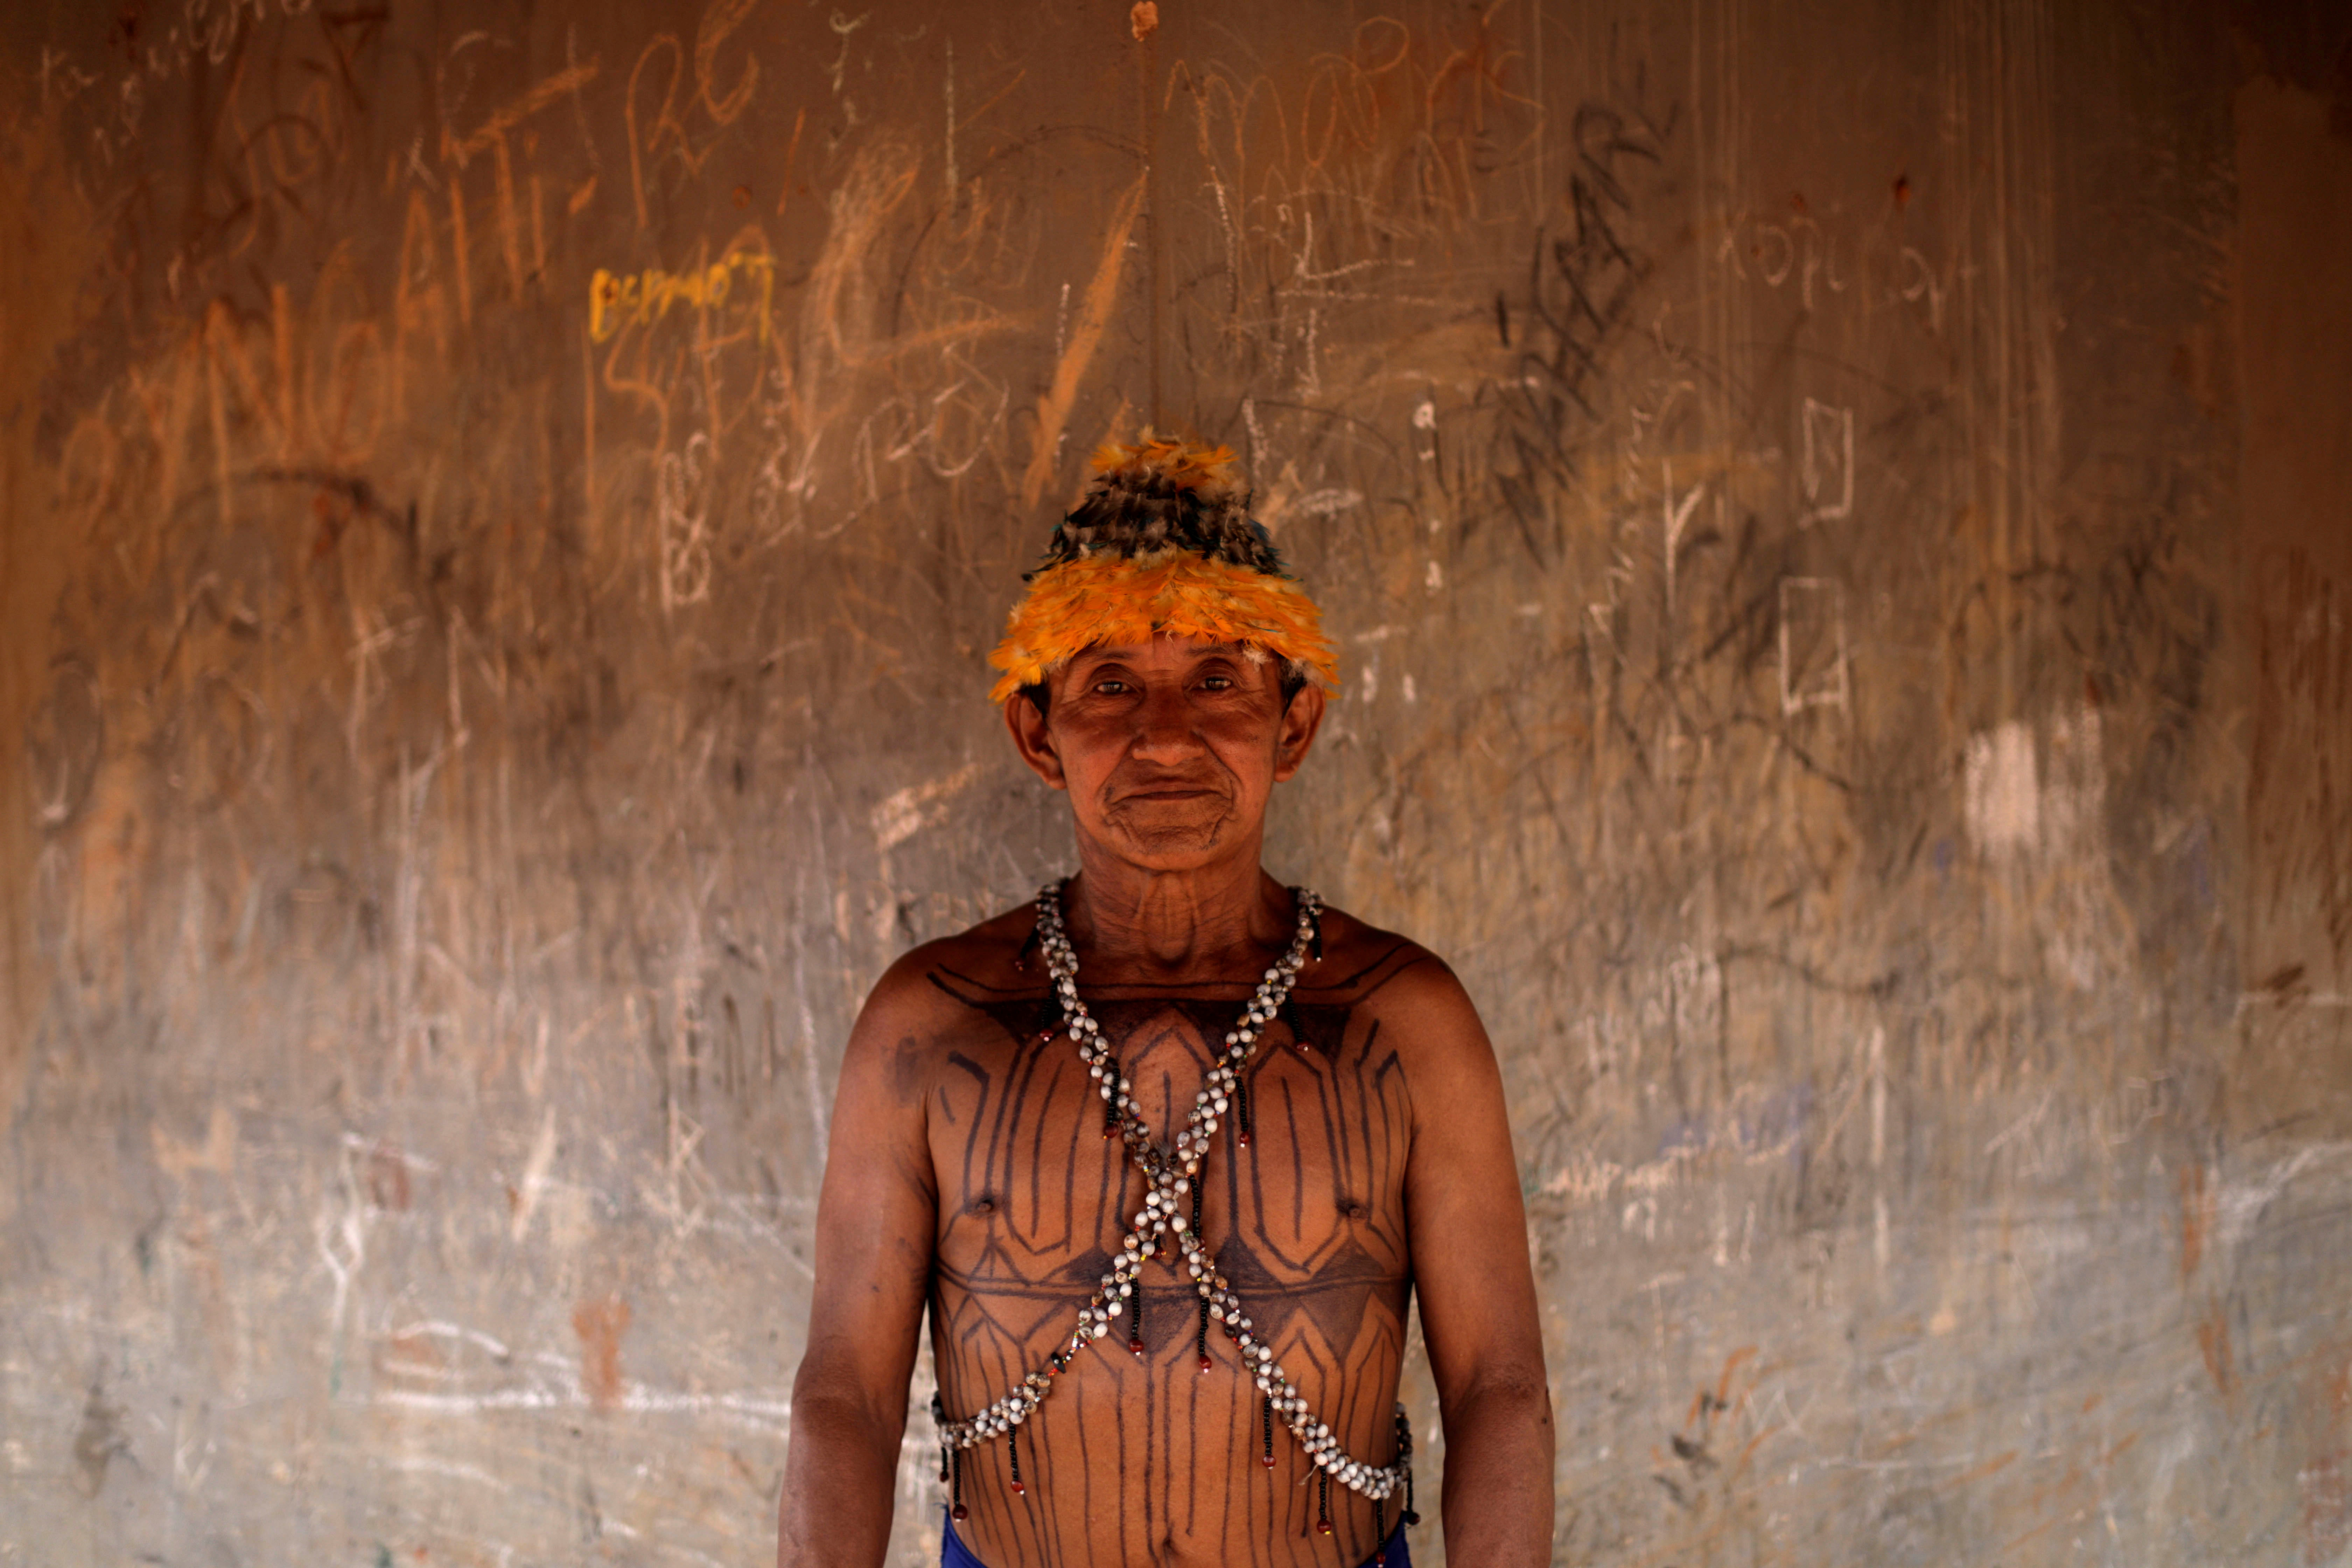 Geraldo, from Munduruku tribe poses for a picture during a four-day pow wow in Piaracu village, in Xingu Indigenous Park, near Sao Jose do Xingu, Mato Grosso state, Brazil, January 15, 2020. Picture taken January 15, 2020. When asked what the importance of nature would be or what they expect for the future of their people, said: